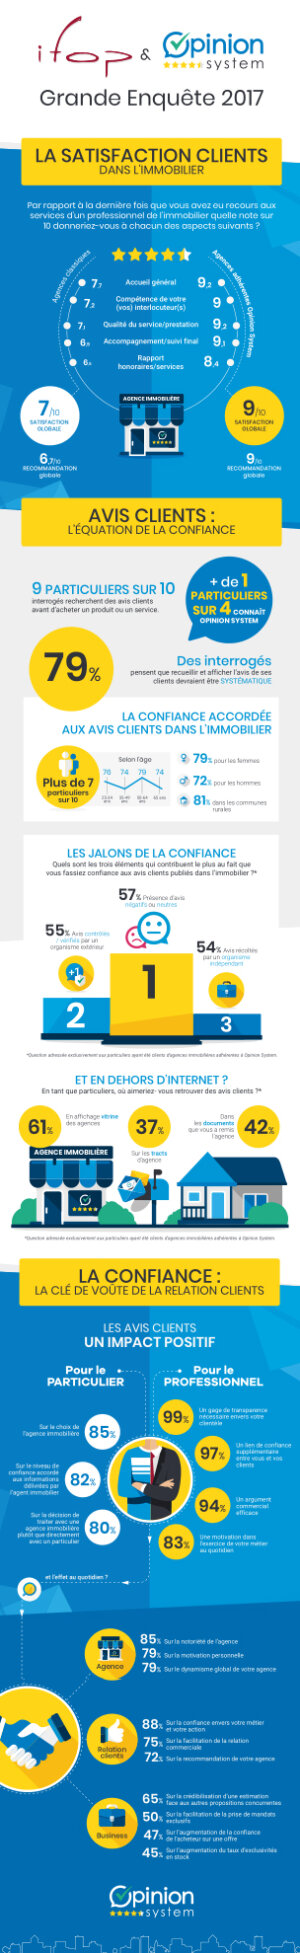 Satisfaction client : les 5 enseignements de l'étude Ifop-Opinion System